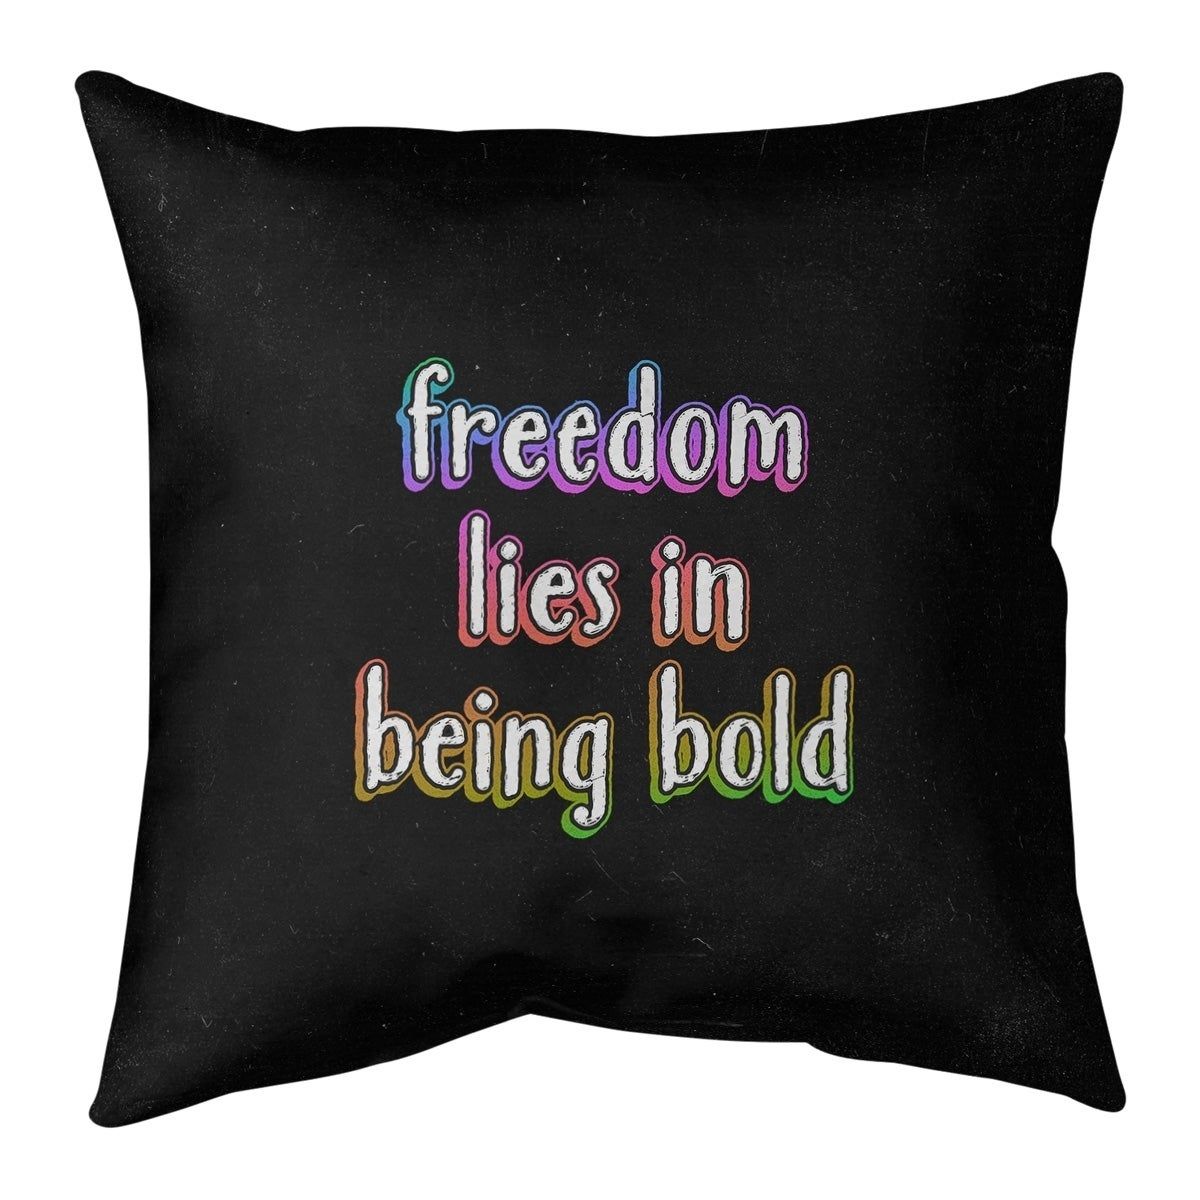 Quotes Be Bold Inspirational Quote Chalkboard Style Pillow Spun Polyester Overstock 30309331